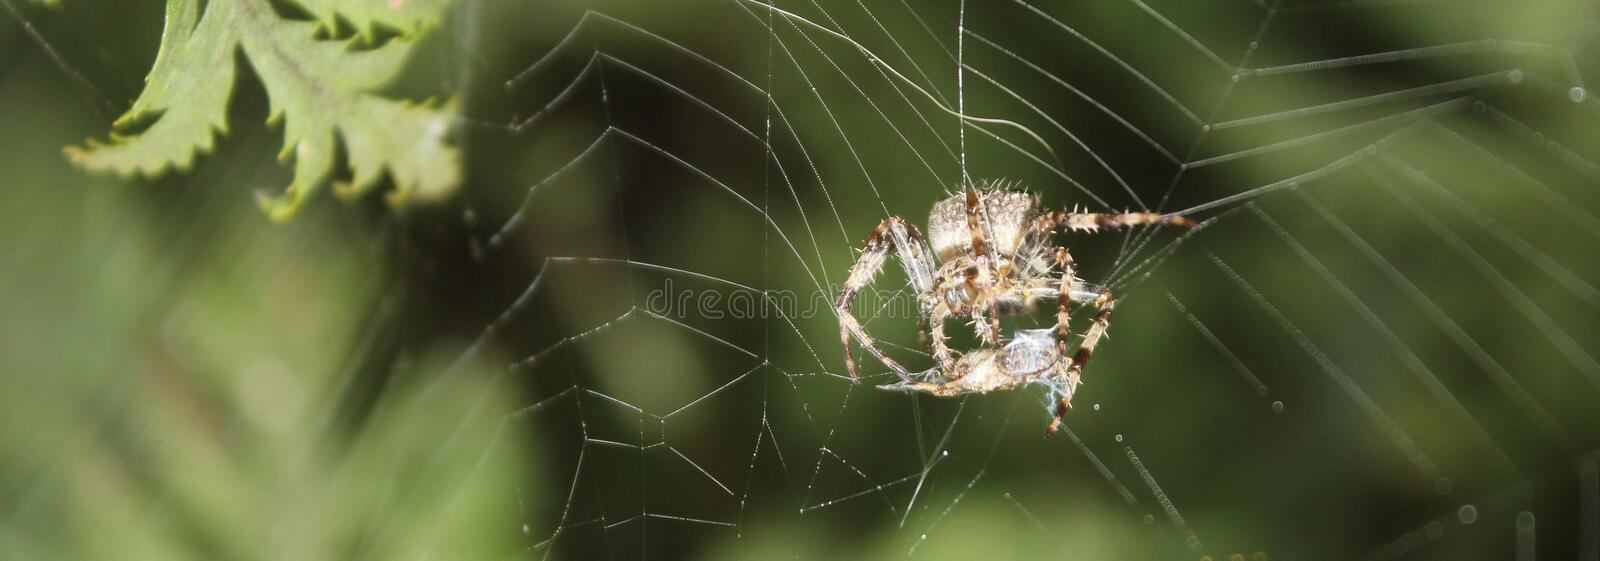 Hairy Spider hanging by a thread on a Web wrapping up an Insect stock photography